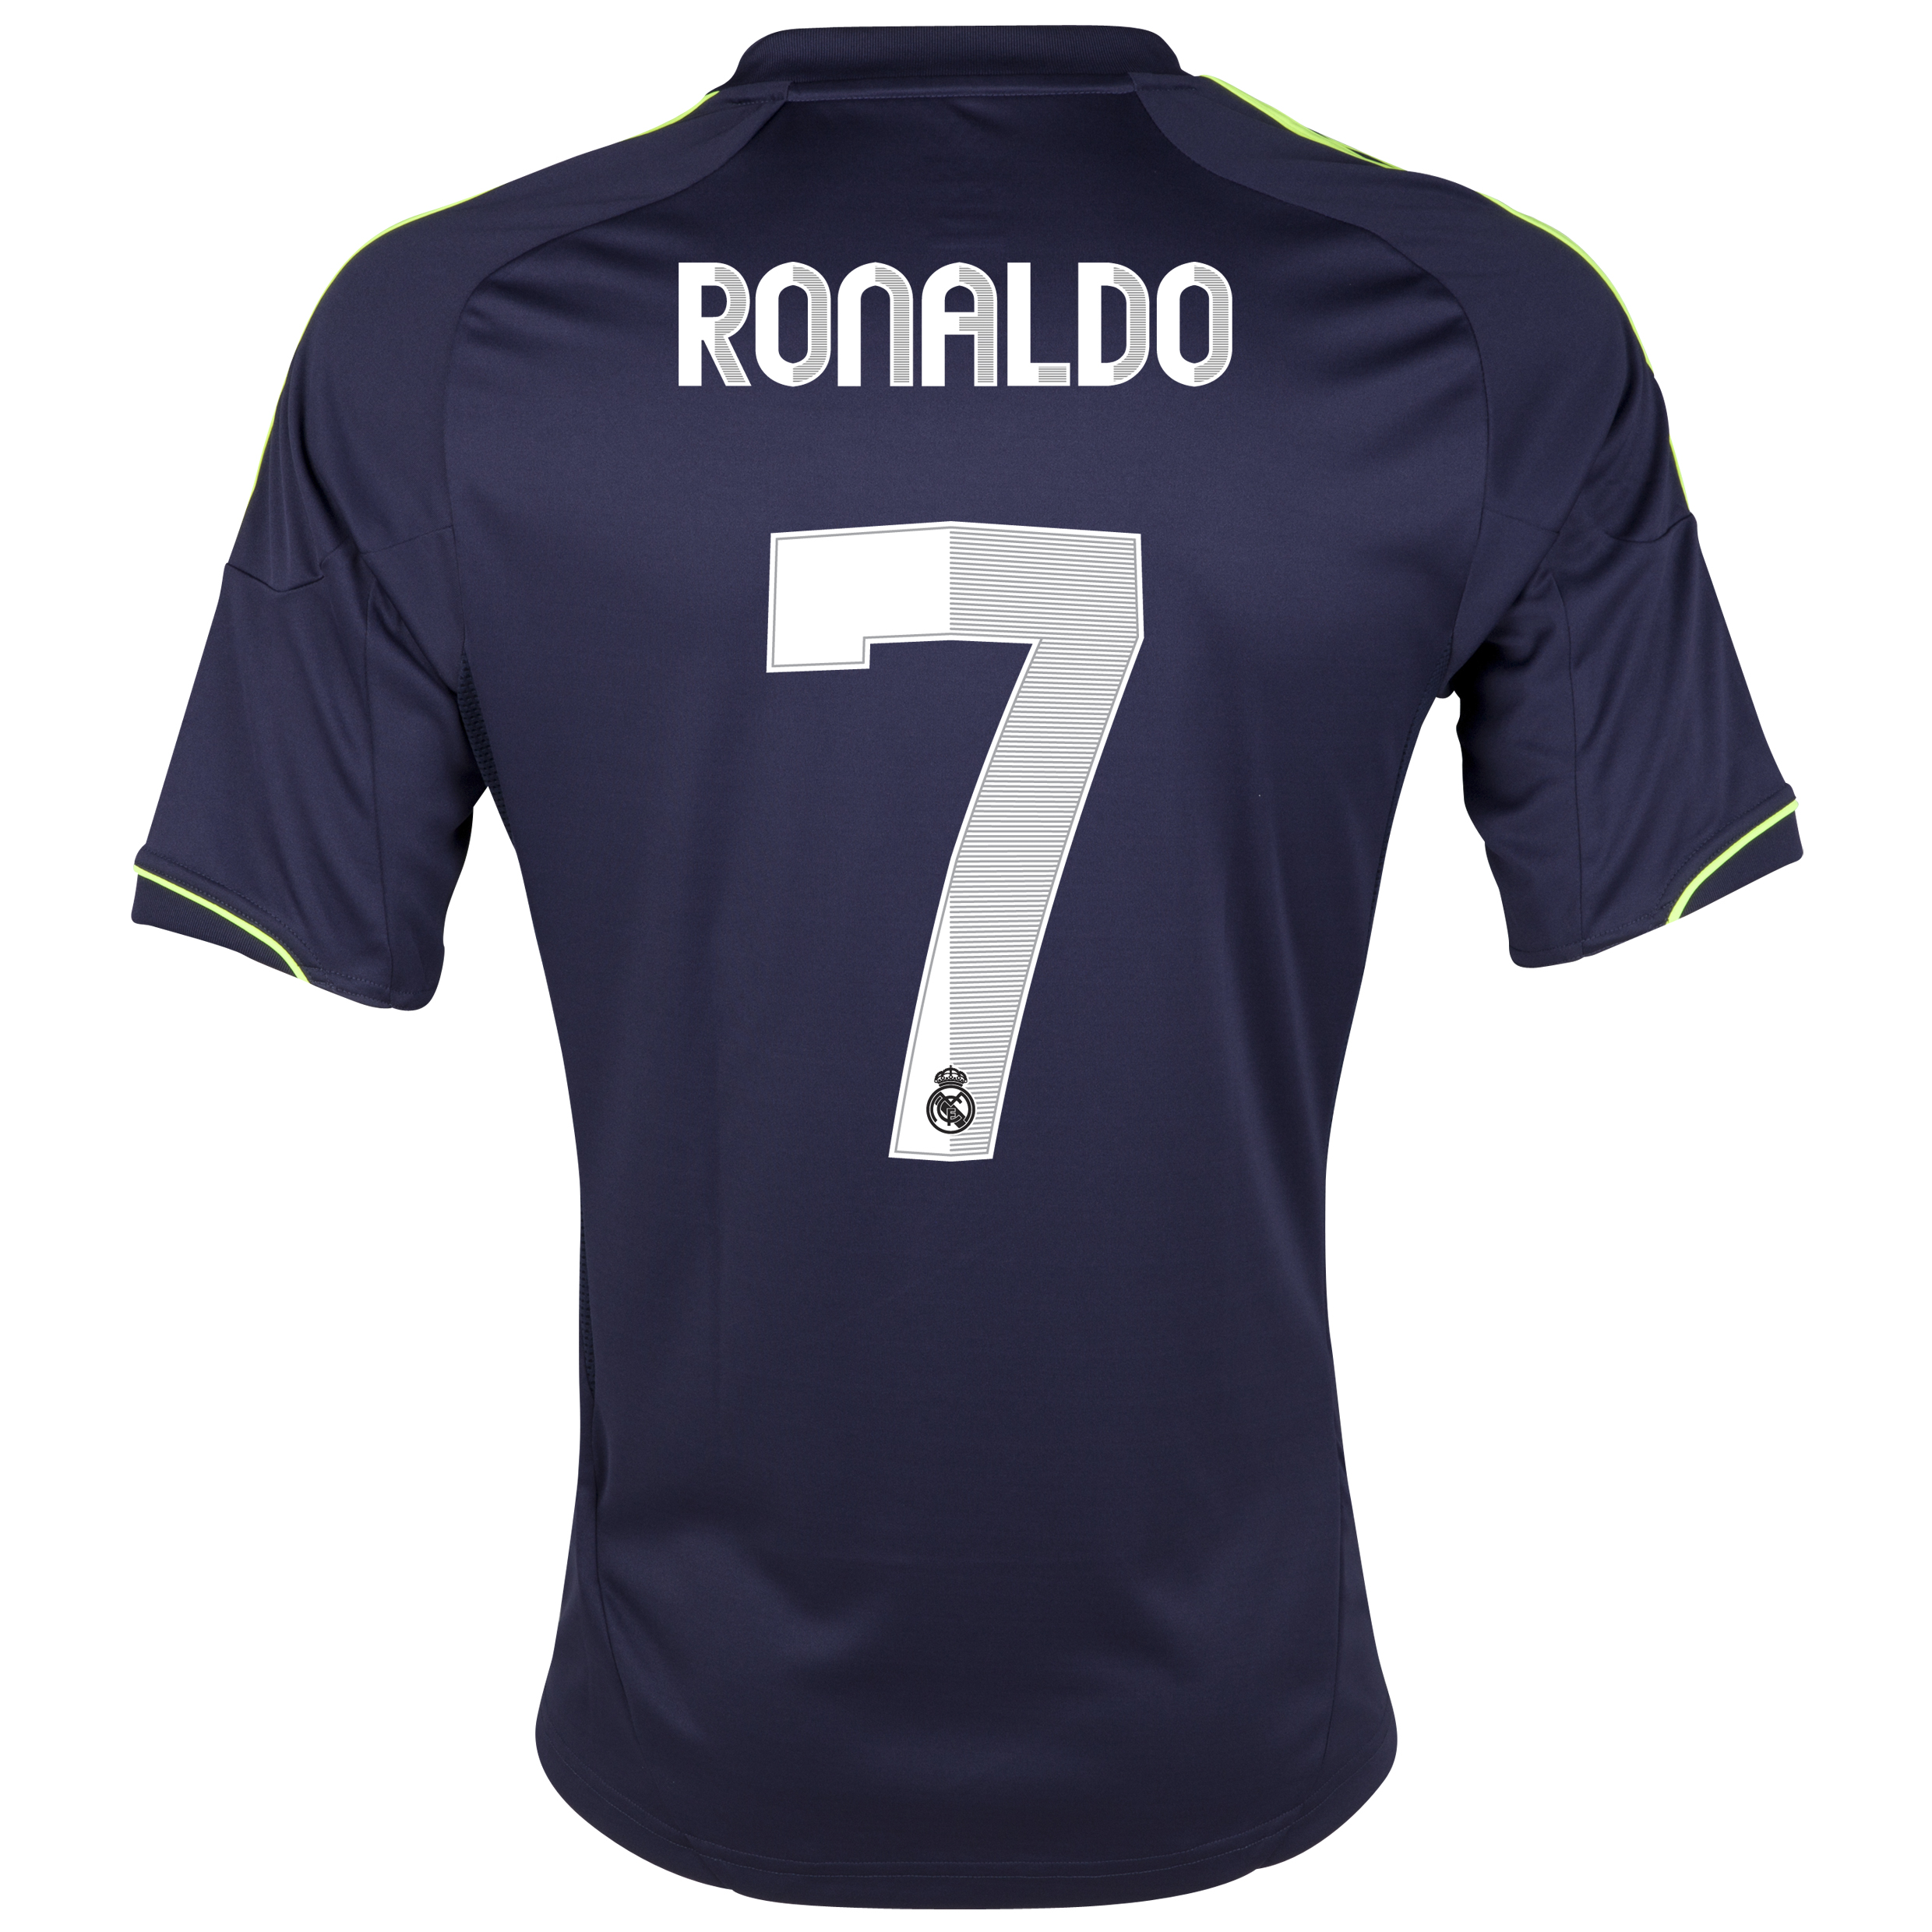 Camiseta visitante Real Madrid 2012/13 con impresin 7 Ronaldo - Joven